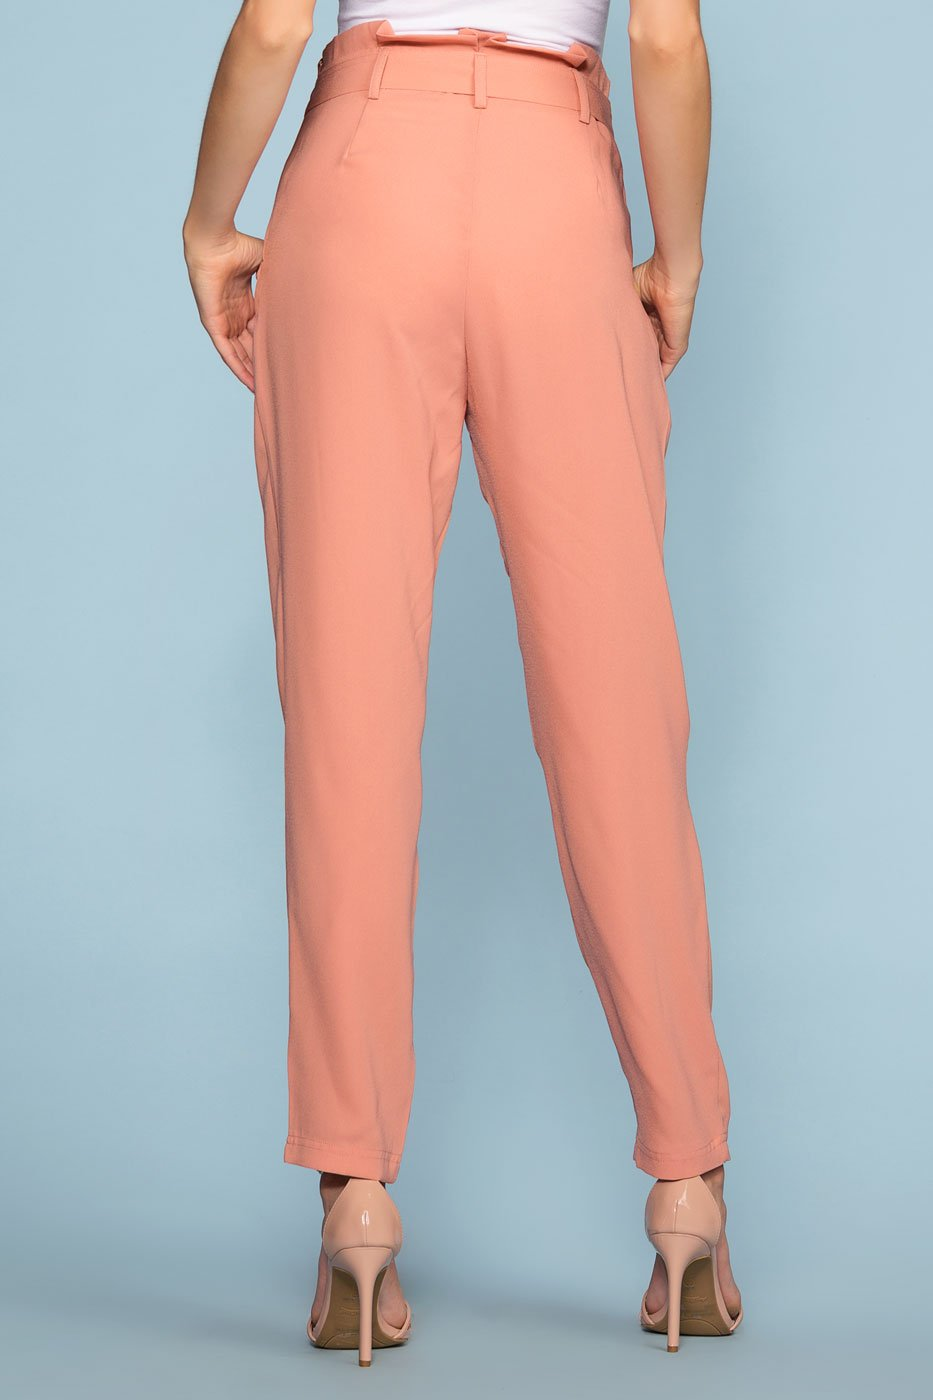 Pants - Christine High Waisted Tie Front Pants - Blush